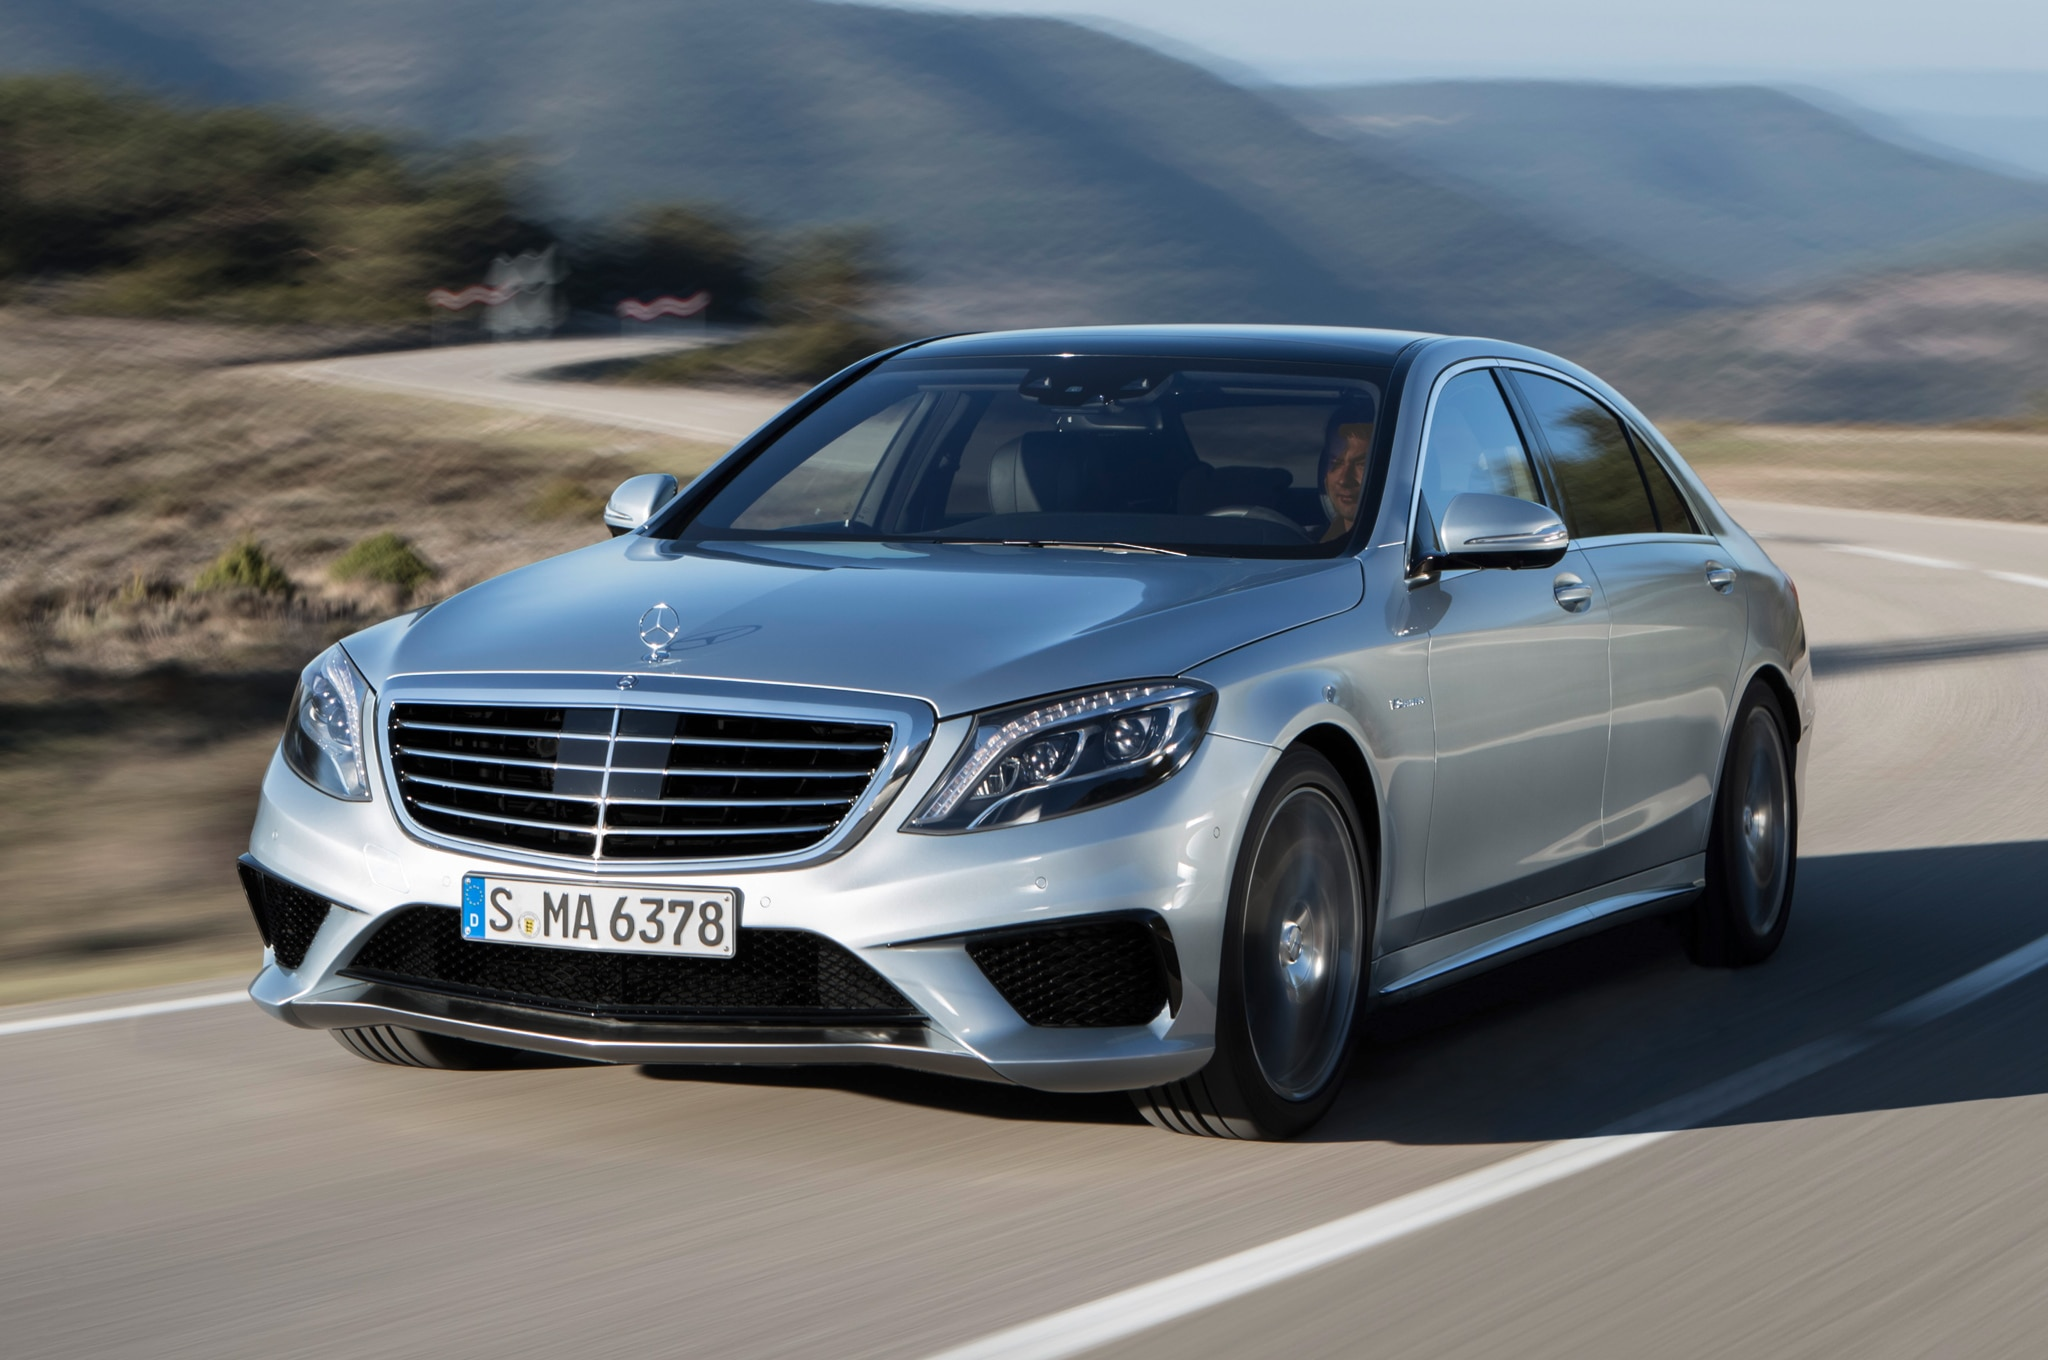 2014 mercedes s600 amg images for Mercedes benz s65 amg 2014